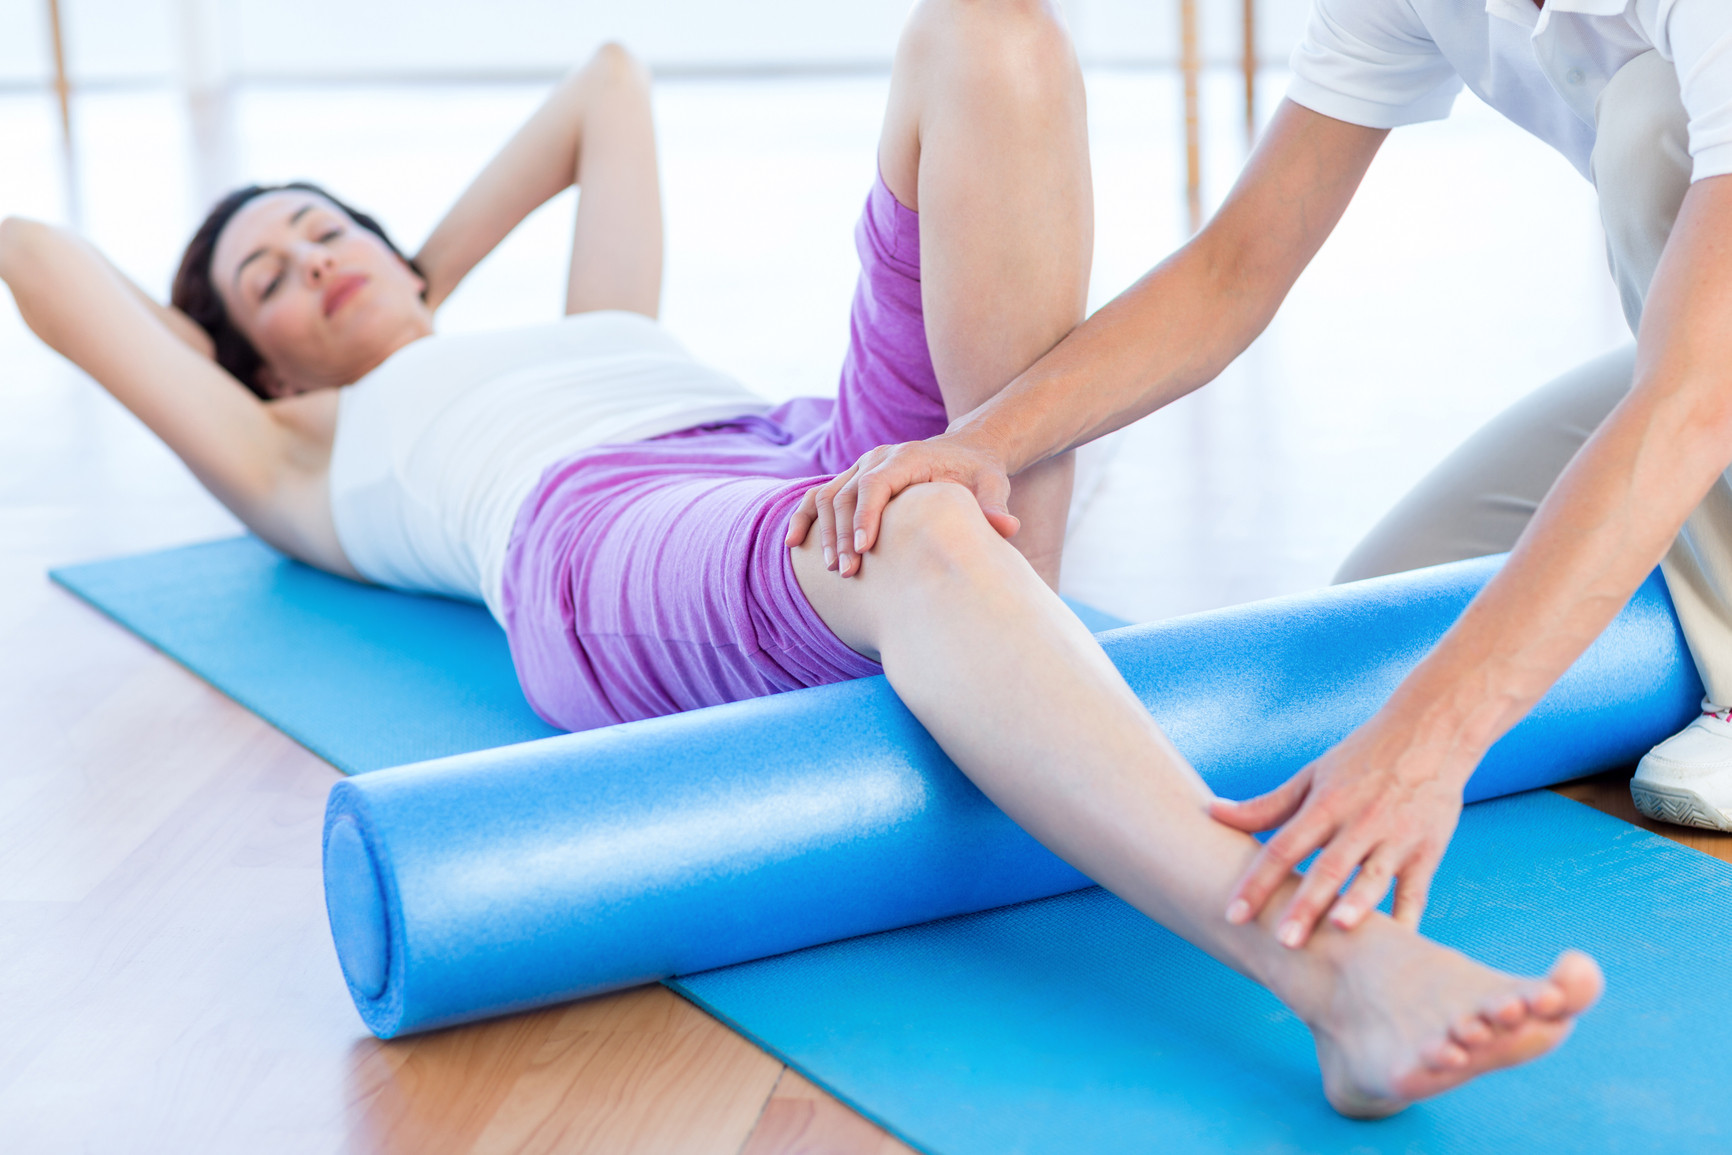 60-MINUTE ATHLETIC RECOVERY